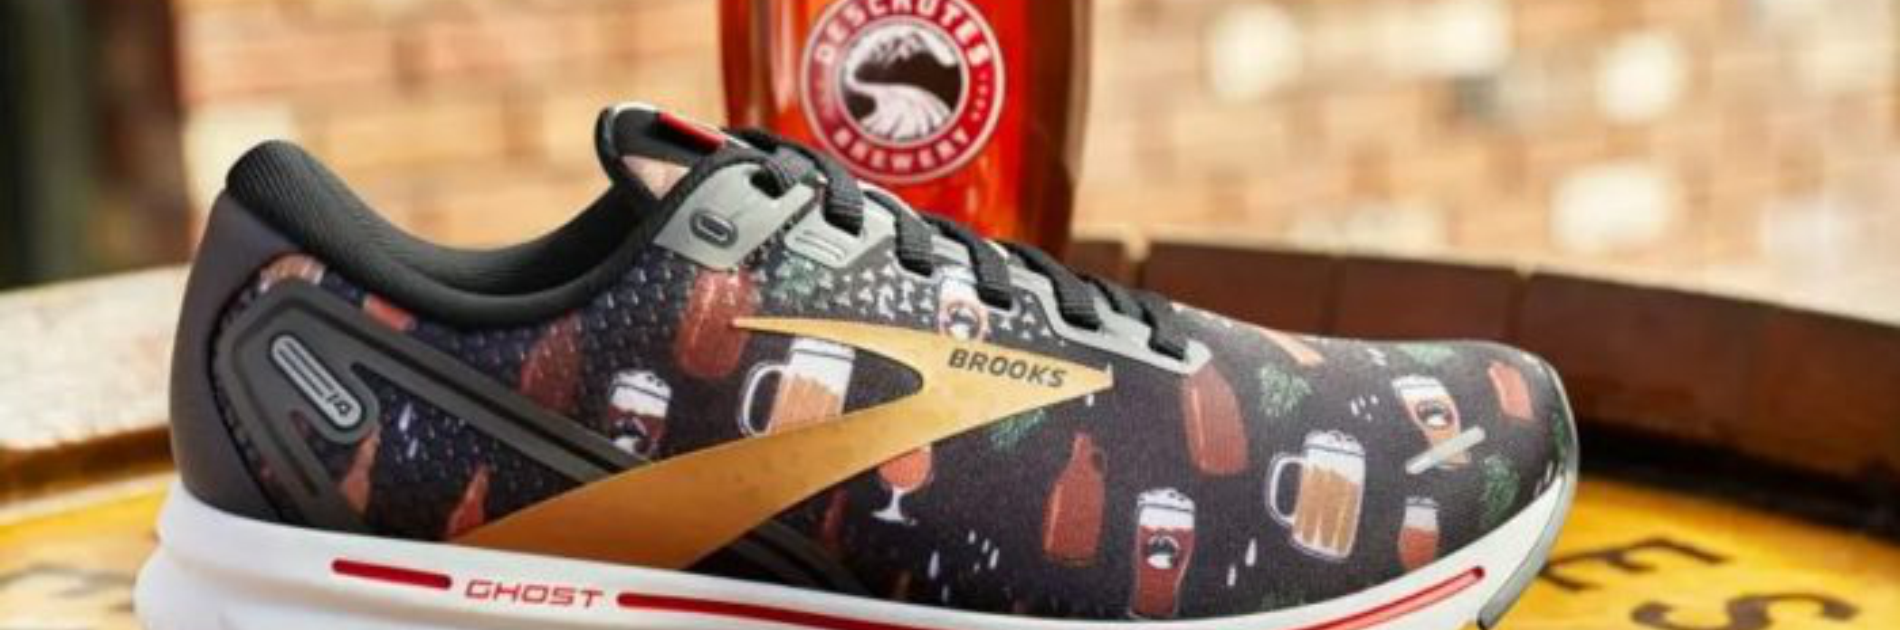 Brooks Running and Deschutes Brewery Combine Favorite Pacific Northwest Pastimes: Running and Hops